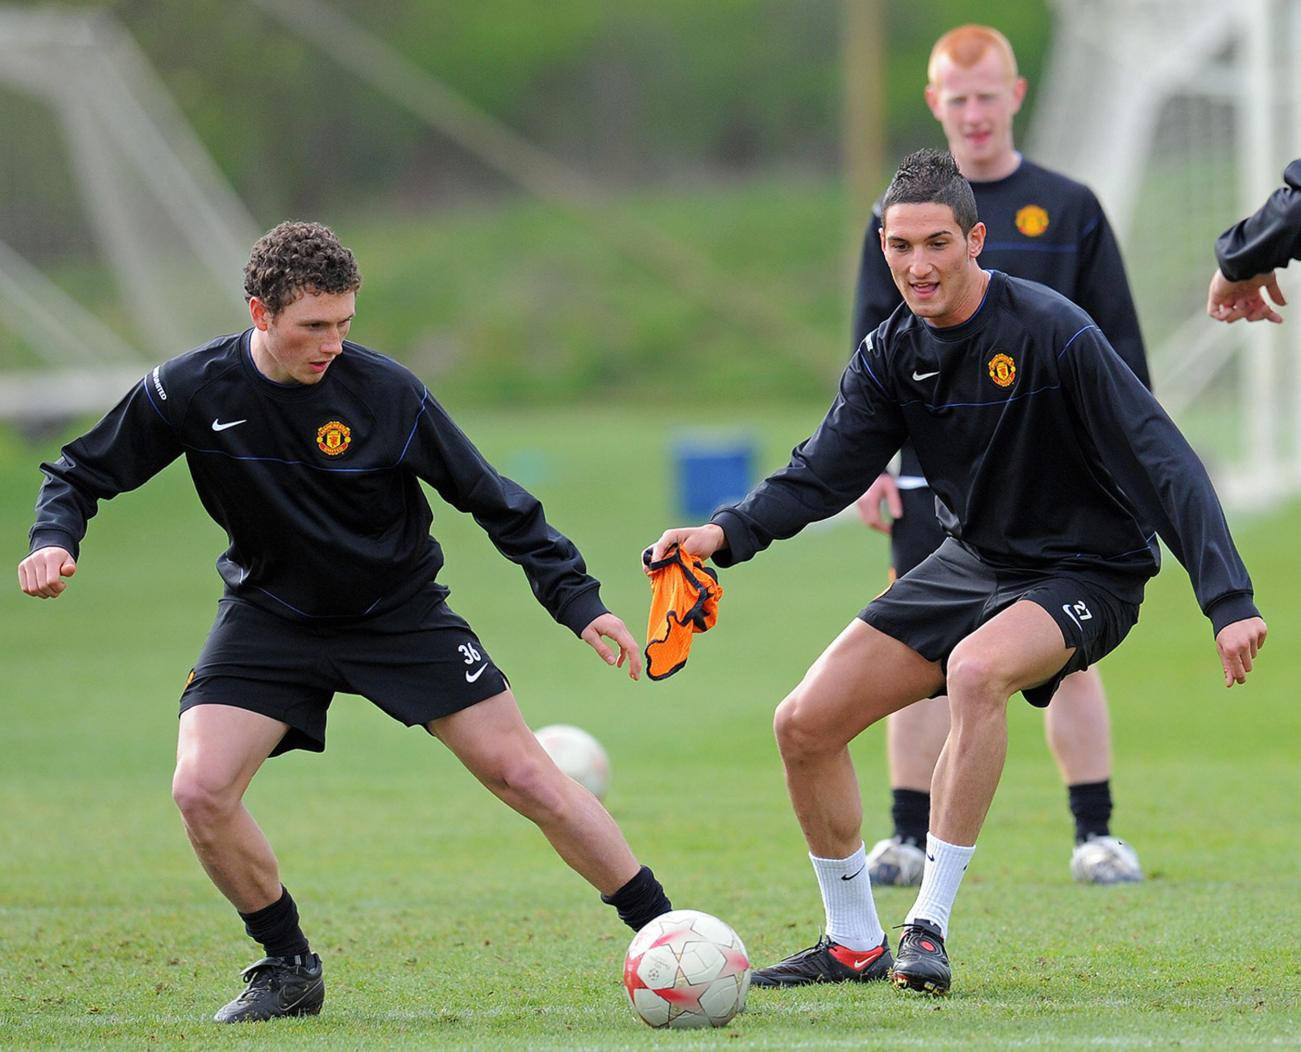 Manchester United's Italian footballer Federico Macheda (R) takes part in a training session at their Carrington training ground in Manchester, north- west England on April 6, 2009. Manchester United take on Porto in their UEFA Champions League quarter final fiest leg football match on April 7 at Old Trafford. AFP PHOTO/PAUL ELLIS (Photo credit should read PAUL ELLIS/AFP/Getty Images)